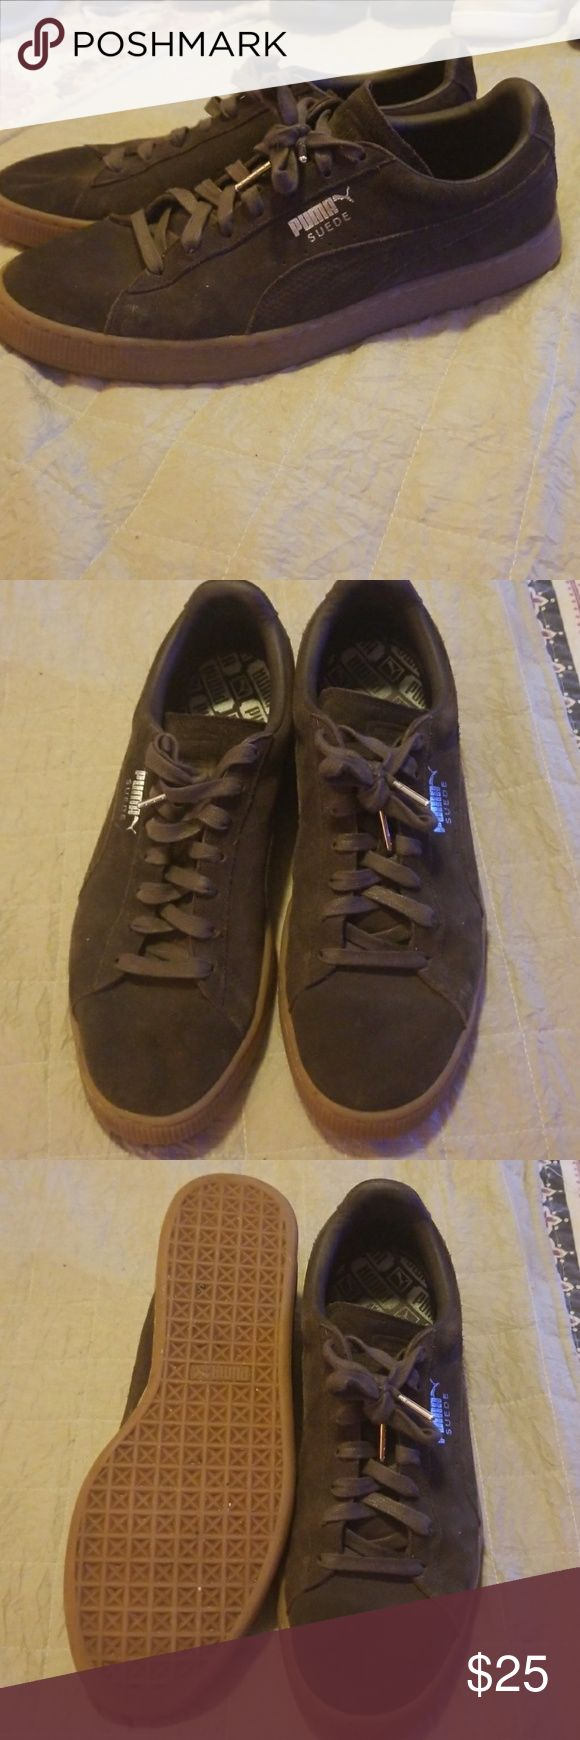 Puma Suede size 11.5 Gently worn Puma Suede size 11.5.  Lowest price Puma Shoes Sneakers